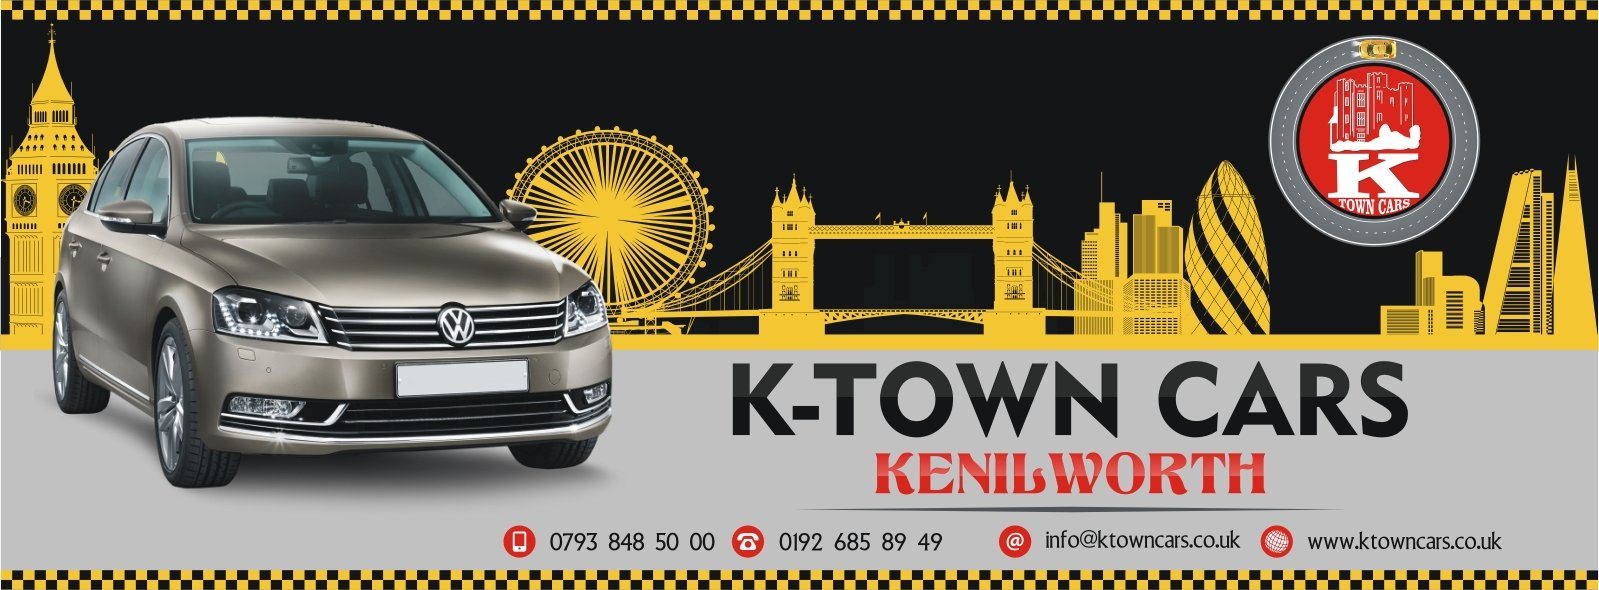 Cheap Taxi Kenilworth, Taxis Kenilworth, Cabs Kenilworth, To Heathrow Airport, To Gatwick Airport, To Manchester Airport